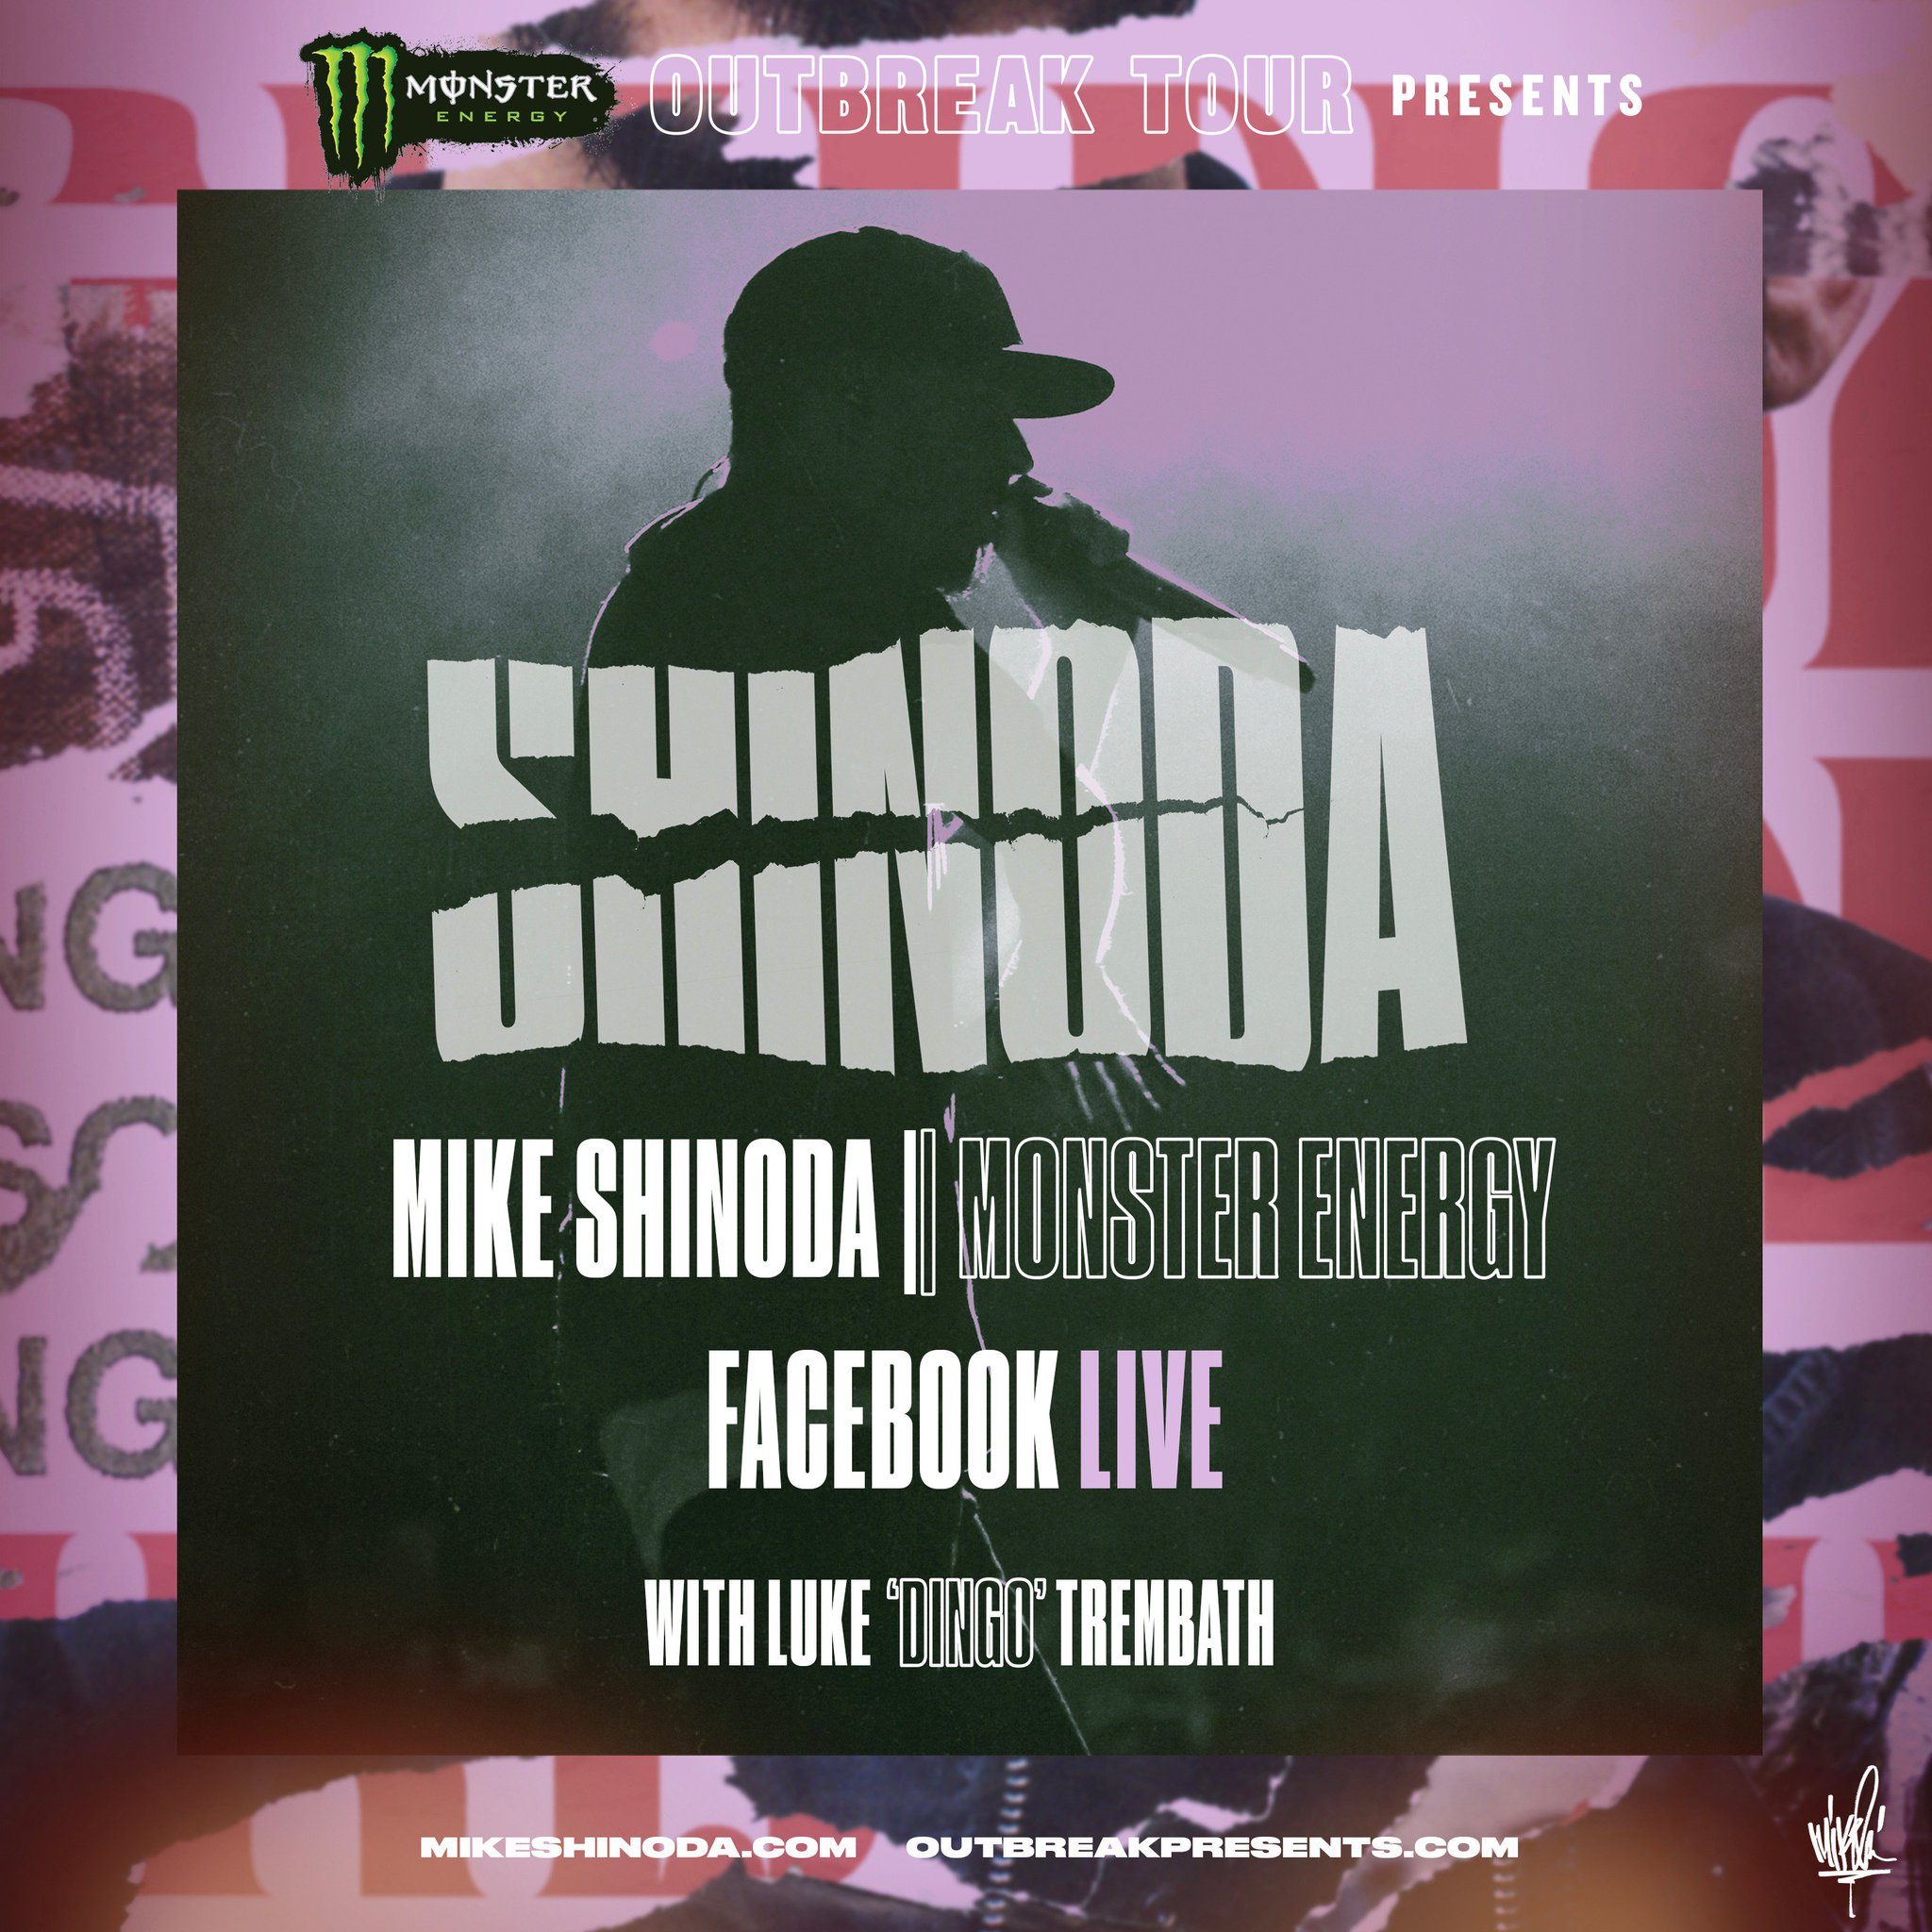 Tomorrow @ 10am (PT) /// I'm doing a live Q&A on @MonsterEnergy's Facebook Page /// See you there   #OutbreakTour https://t.co/xqtbMrFJNm